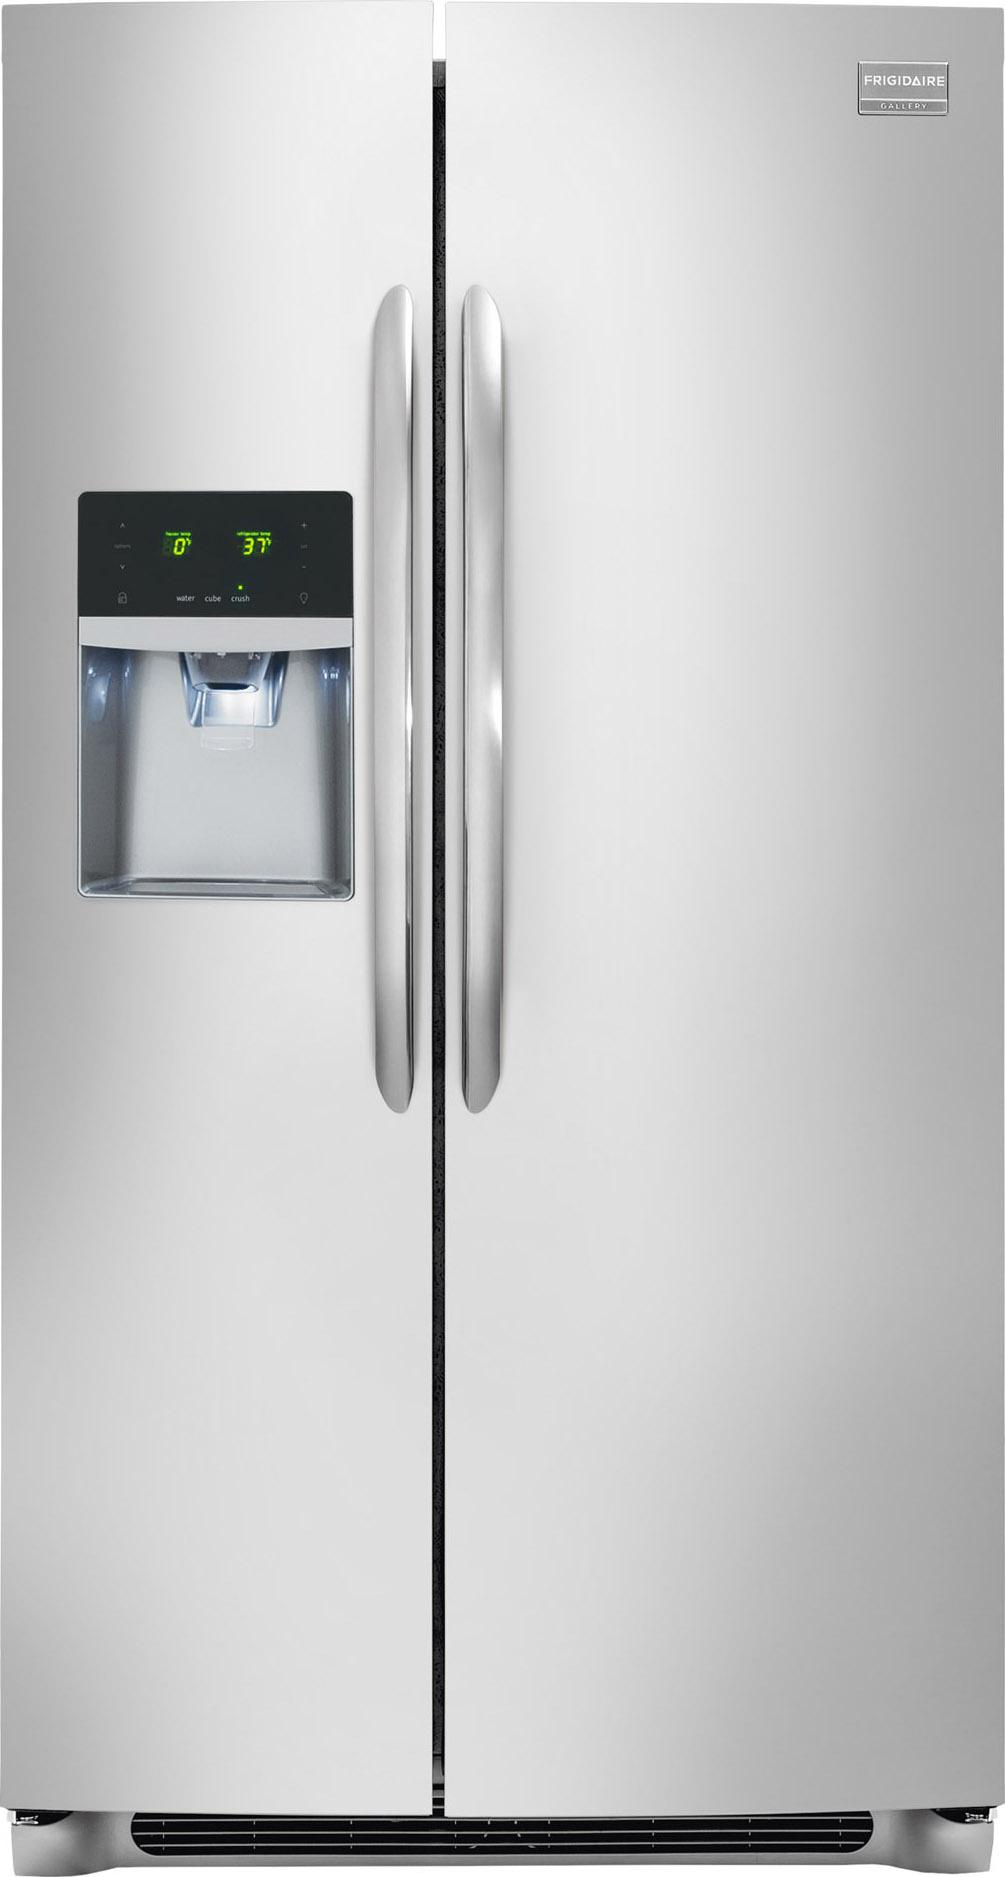 Frigidaire Frigidaire Gallery Refrigerators 23 Cu. Ft. Side-By-Side Refrigerator - Item Number: FGHS2355PF